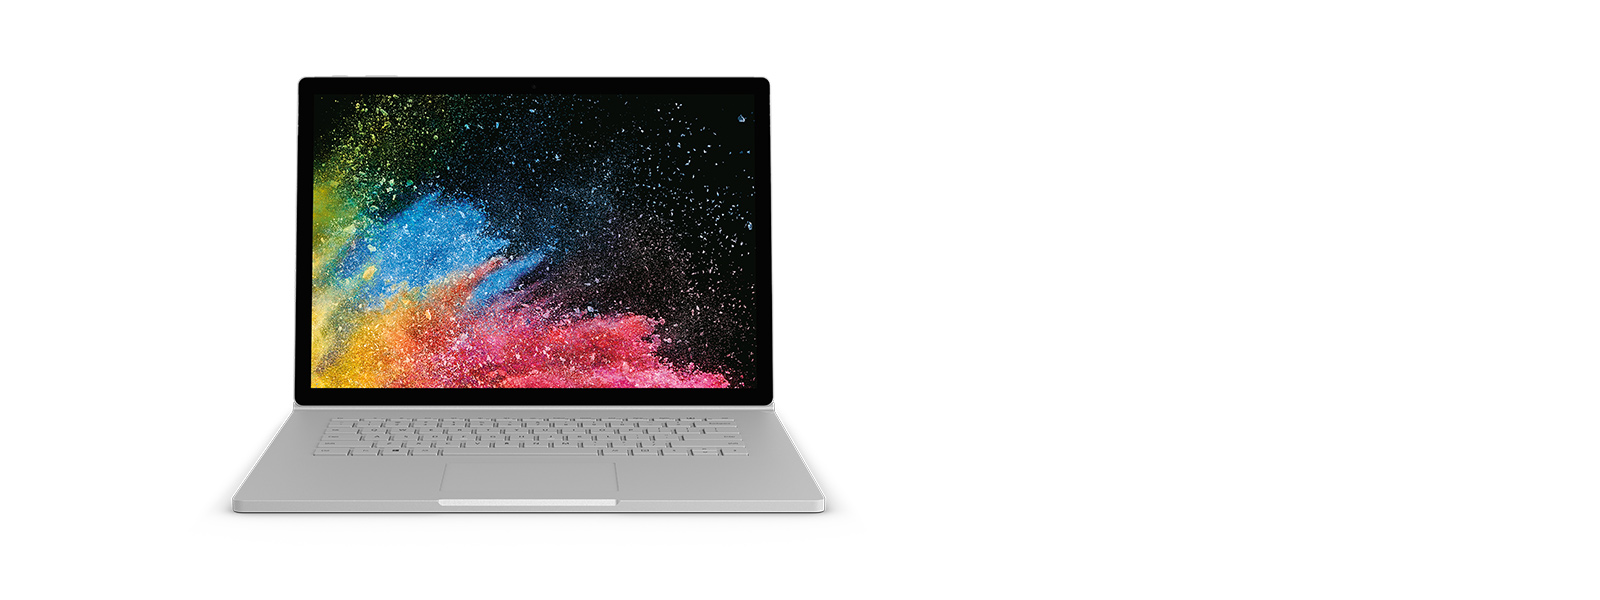 Surface Book 2 en modo de portátil con captura de pantalla.